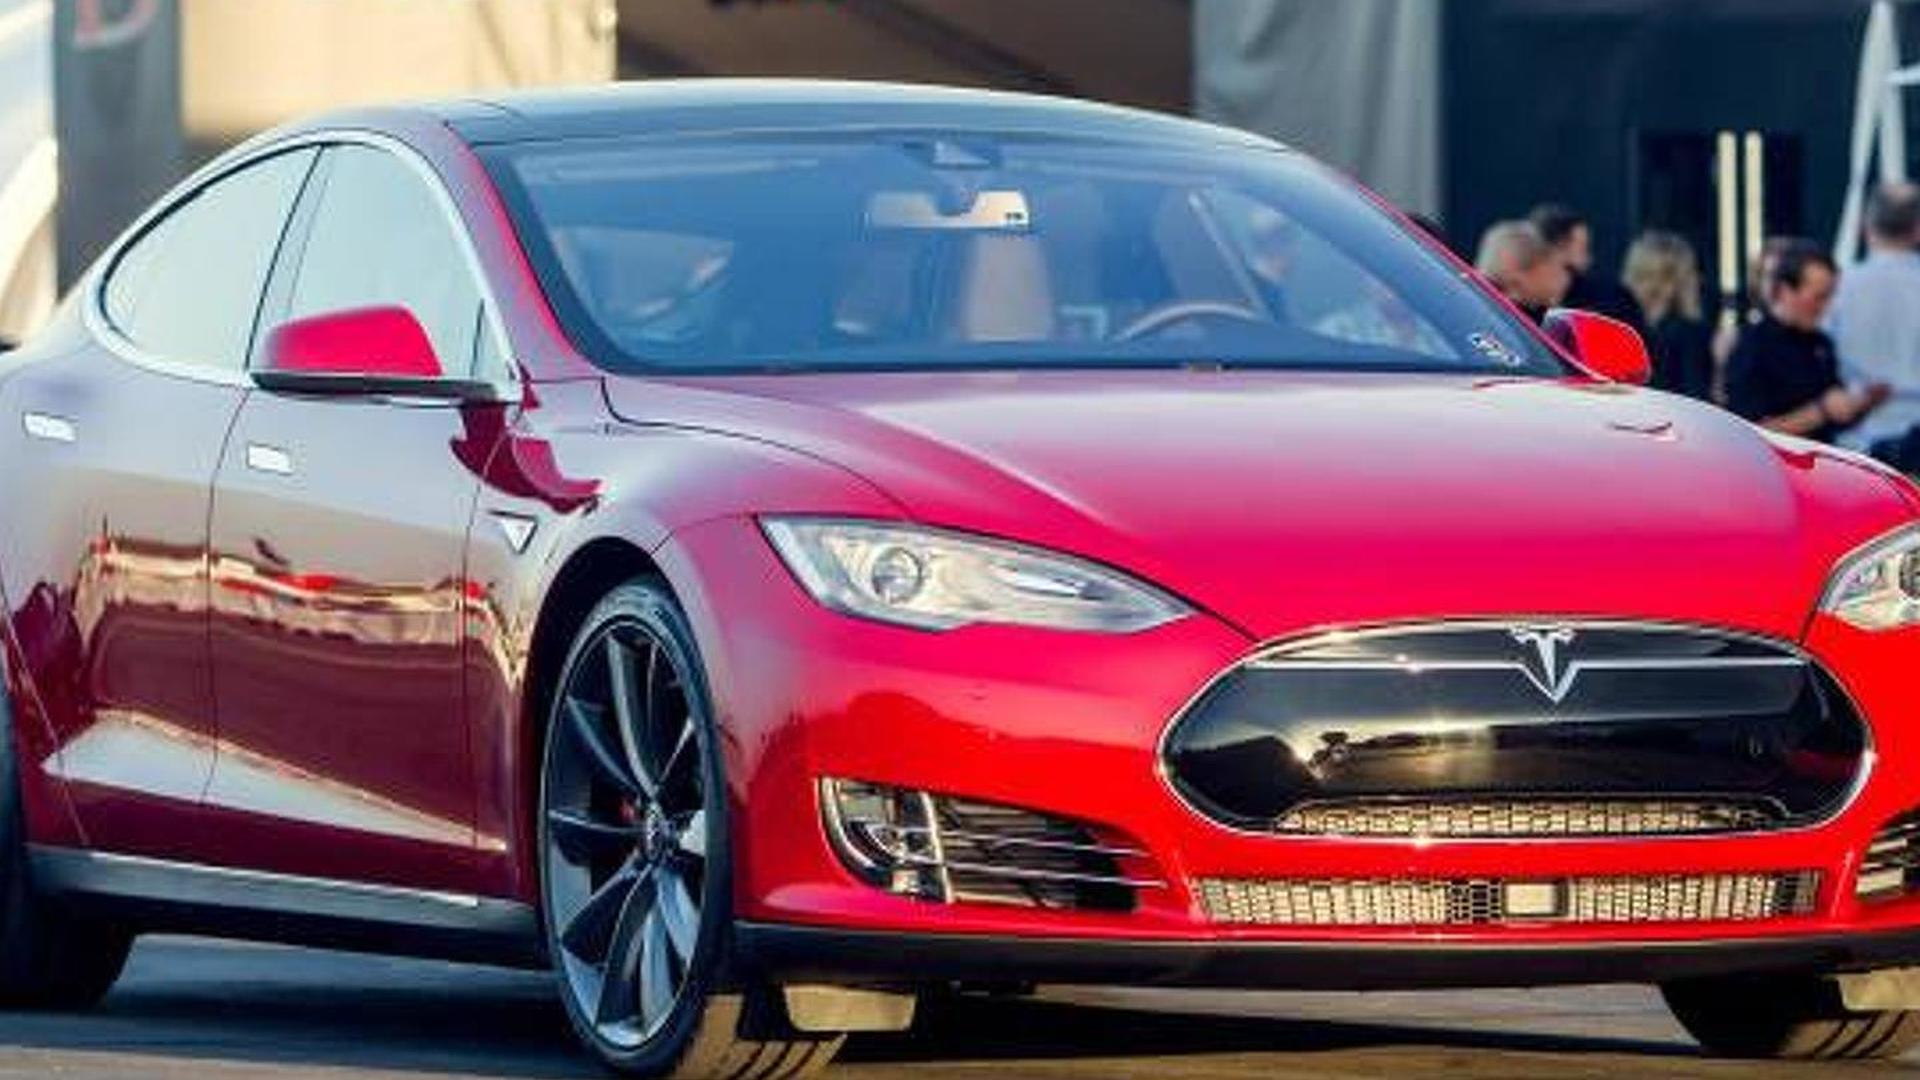 691 bhp Tesla Model S P85D unveiled with all-wheel drive and 3.2s 0-60 mph sprint [video]